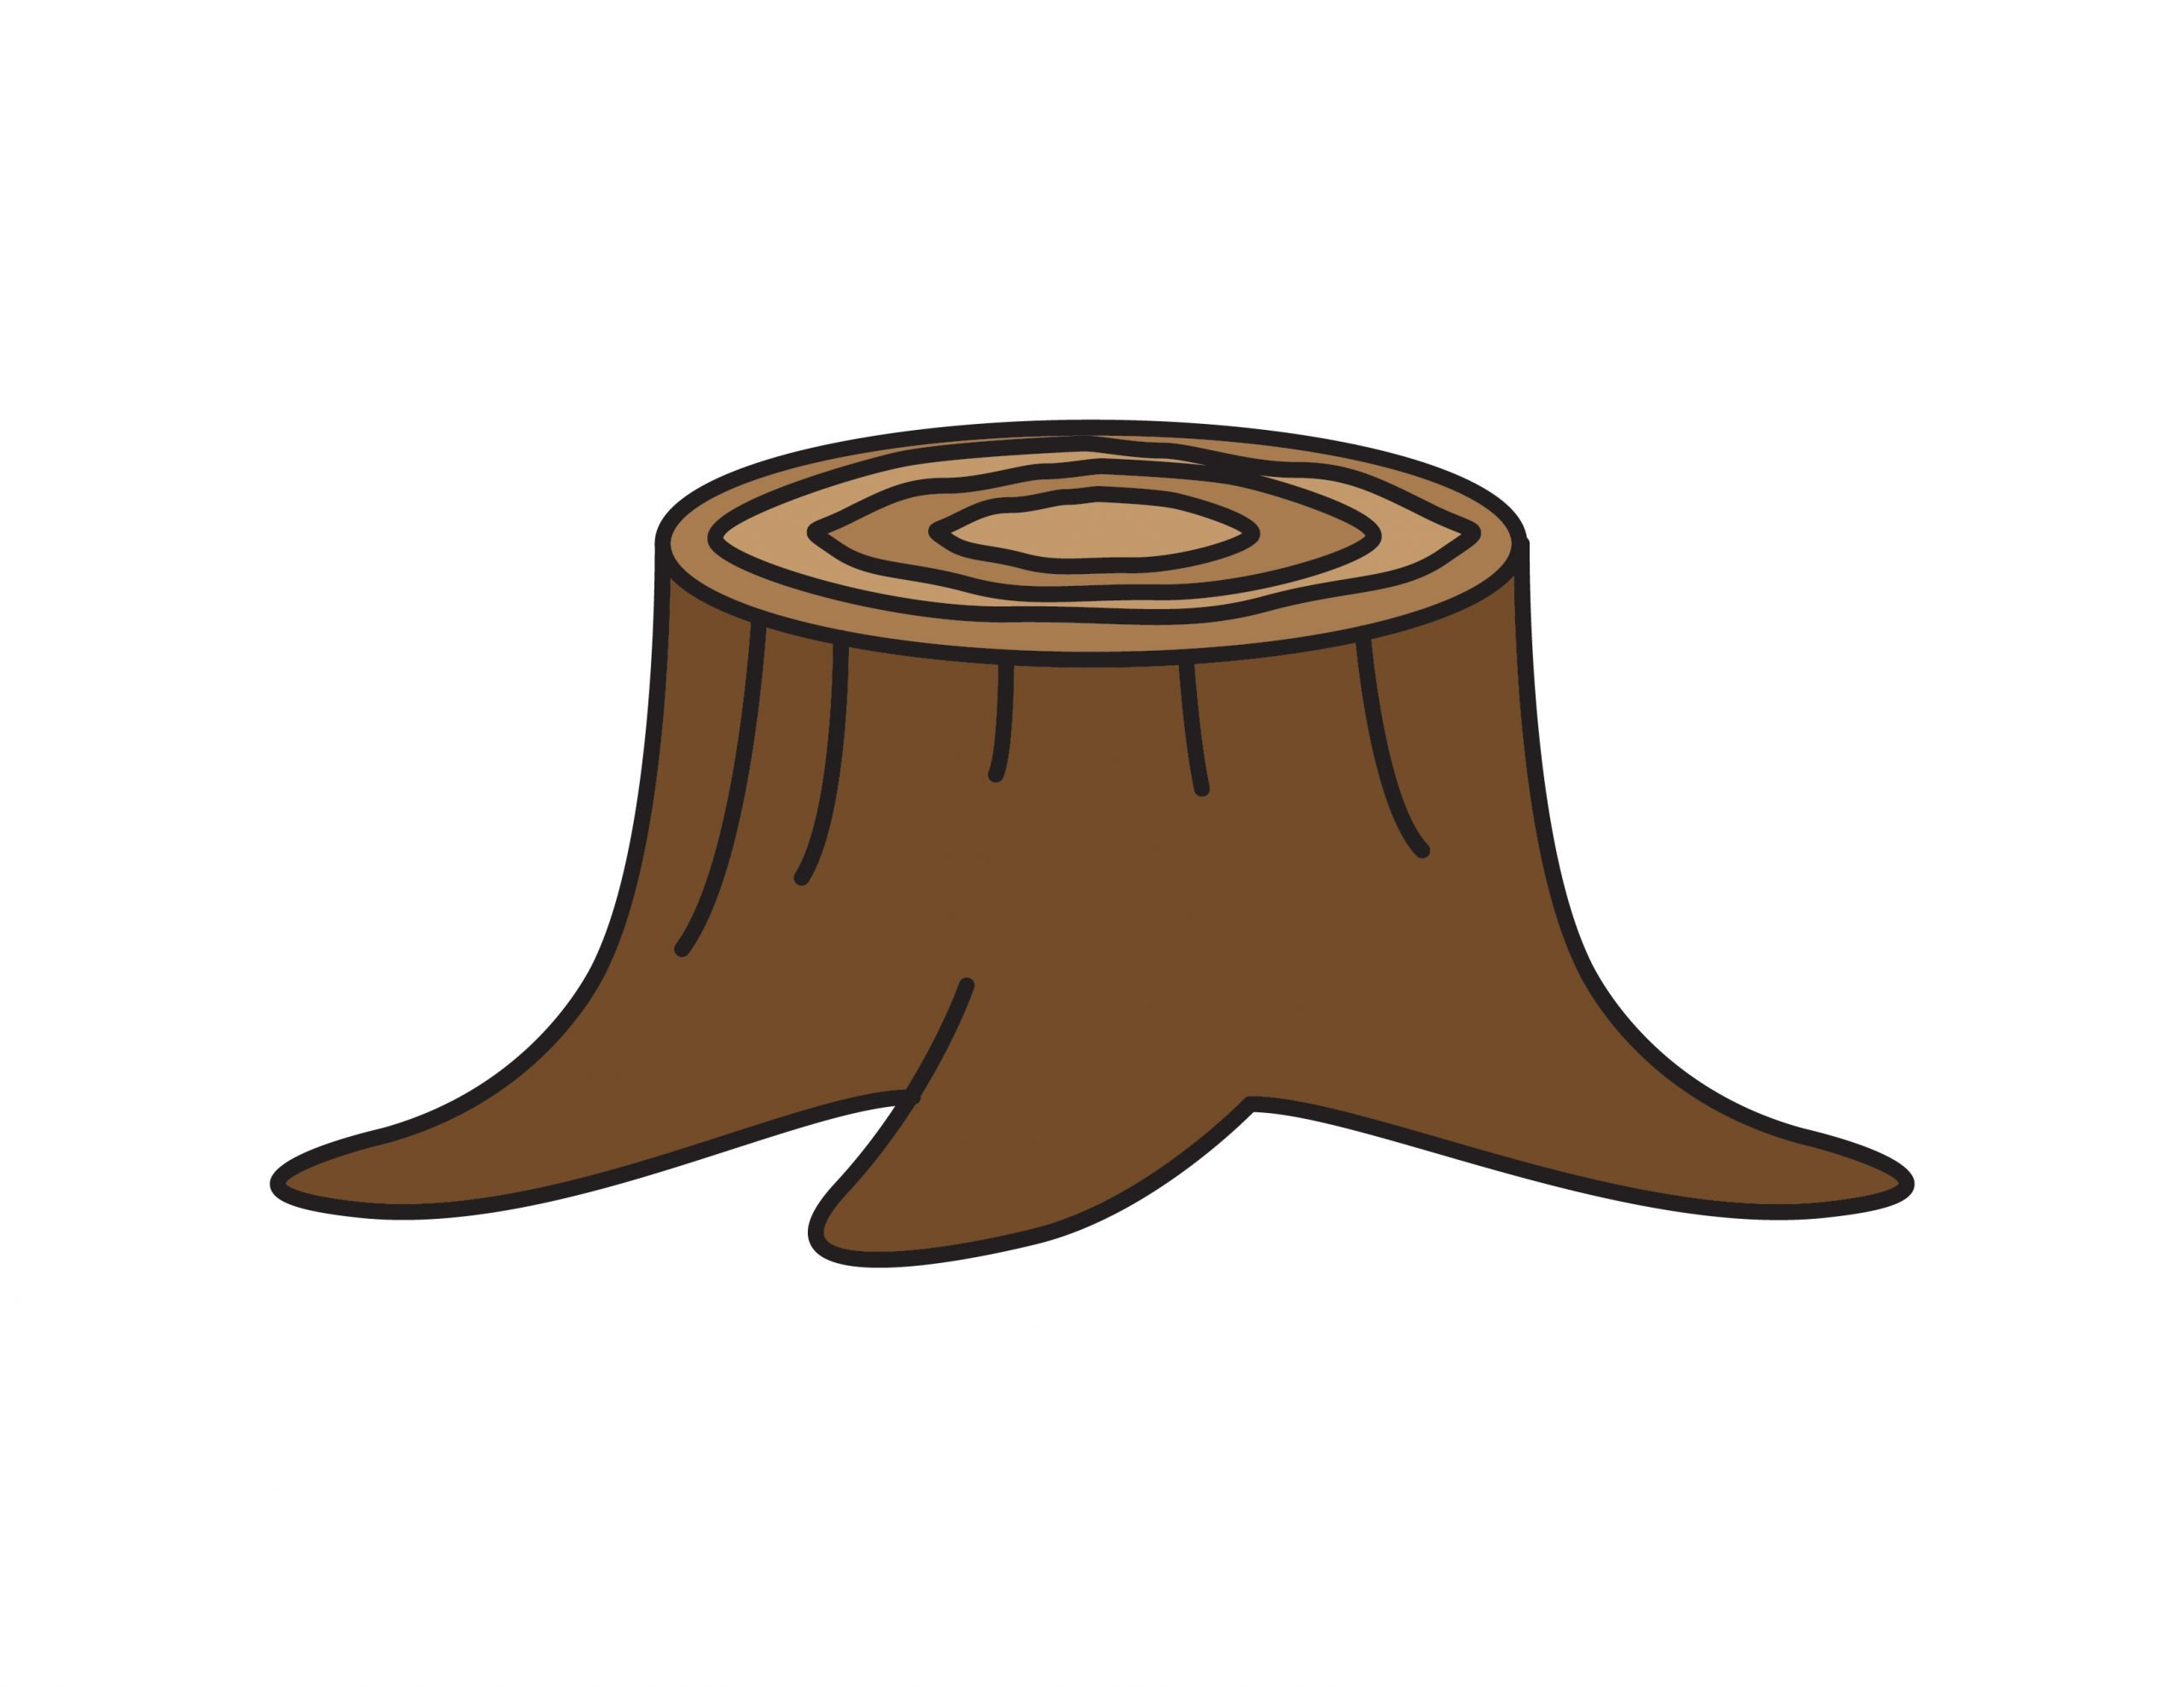 How To Draw a Tree Stump (Easy Step By Step for Kids)